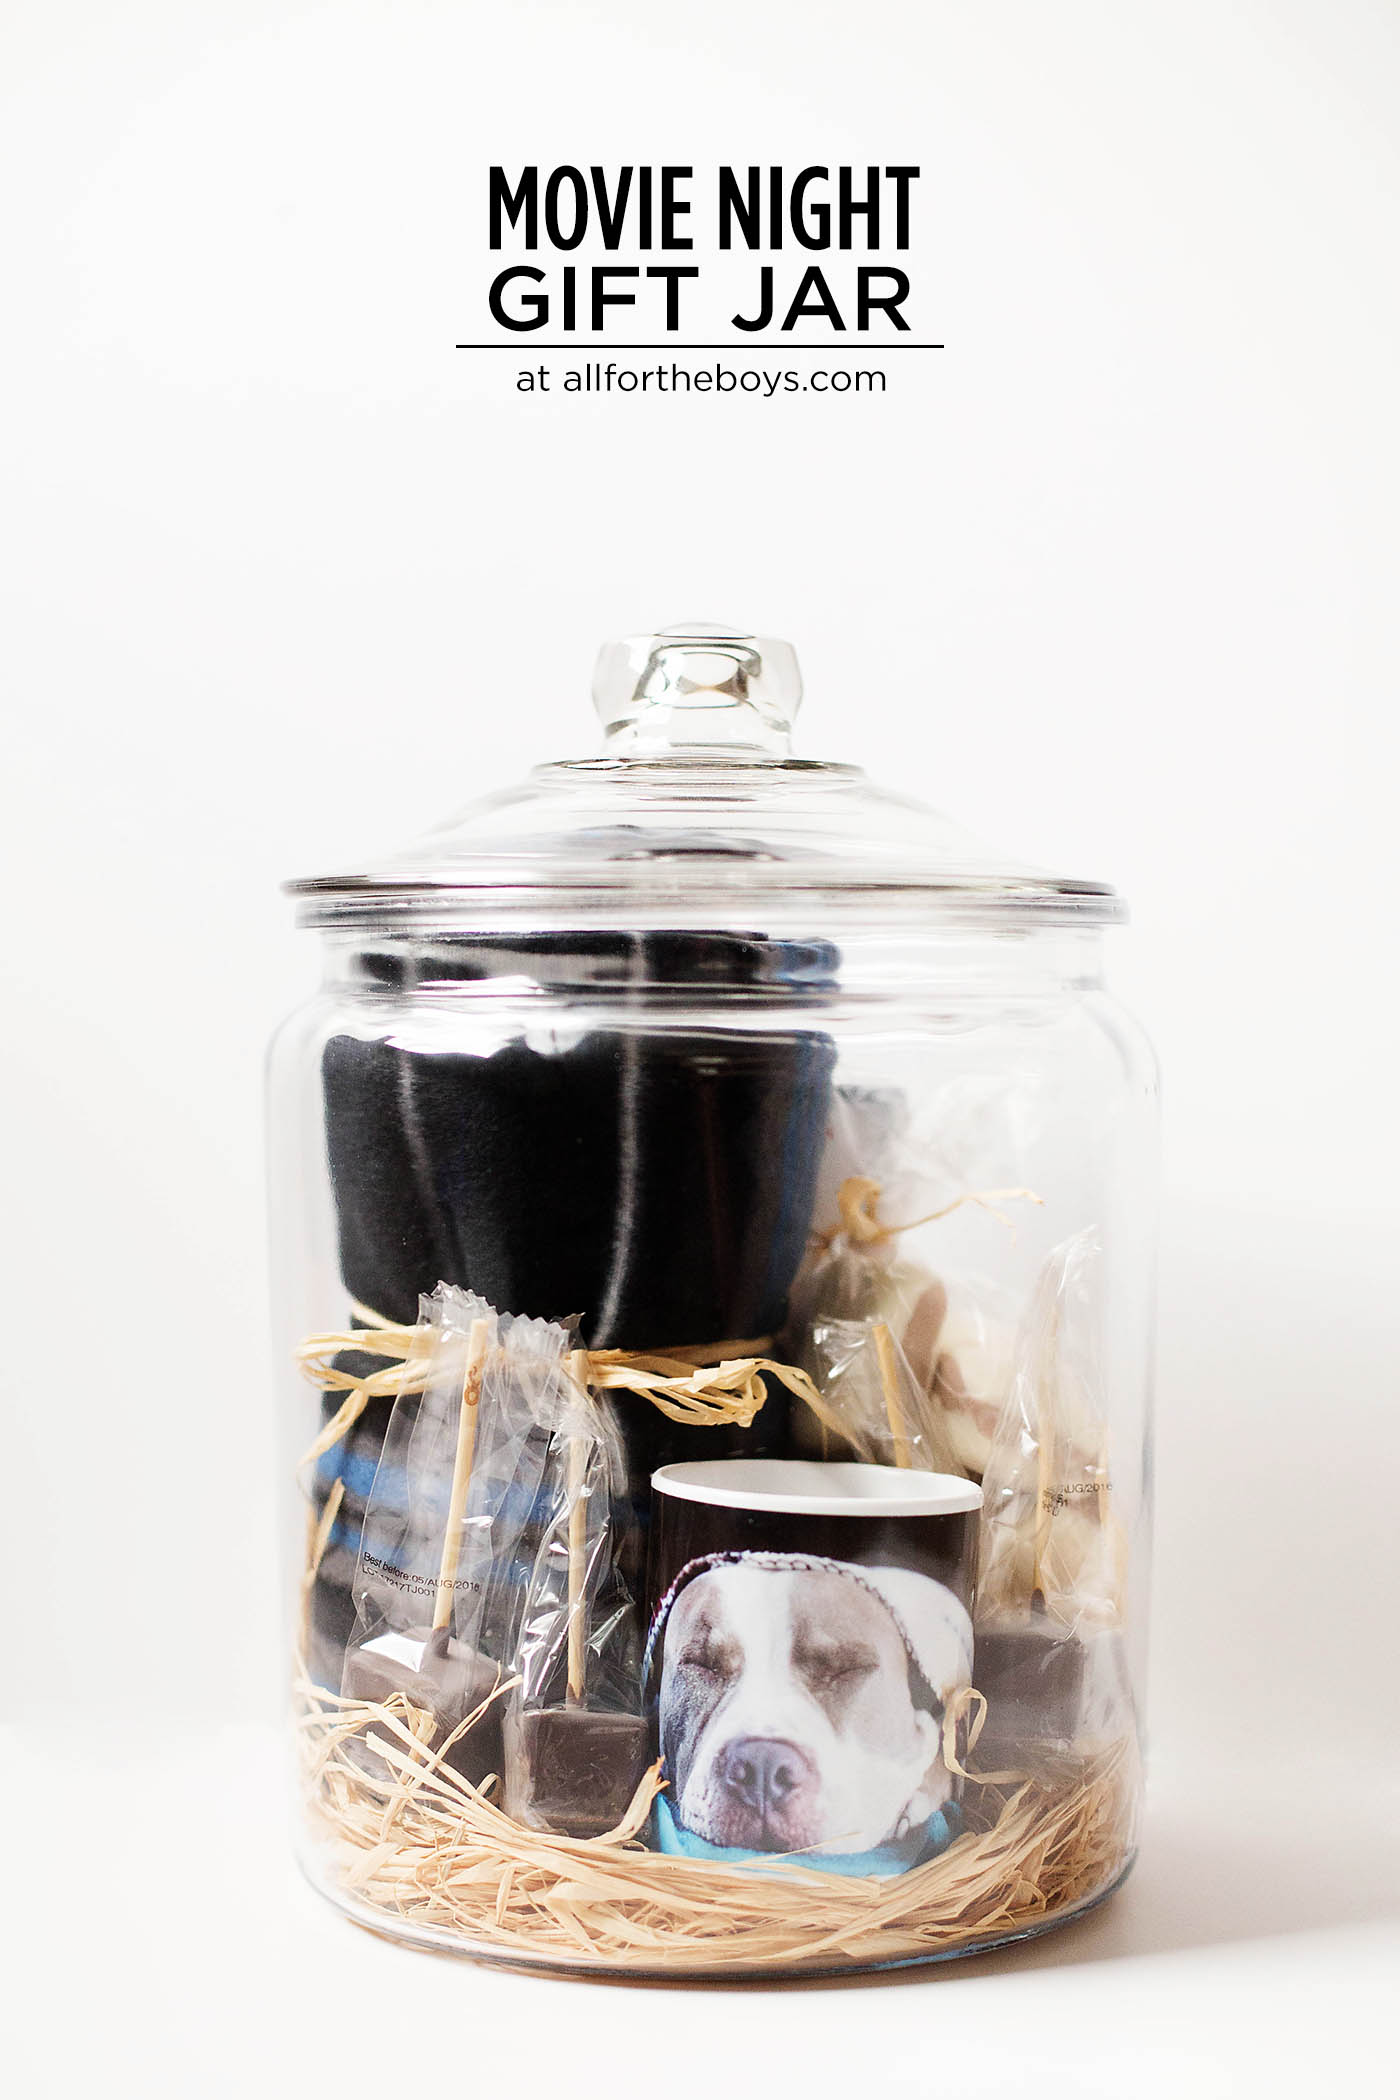 Gifts of experience are an awesome choice but we love wrapping gifts too! This fun personalized gift jar lets you give a cozy movie night all wrapped up in a jar!